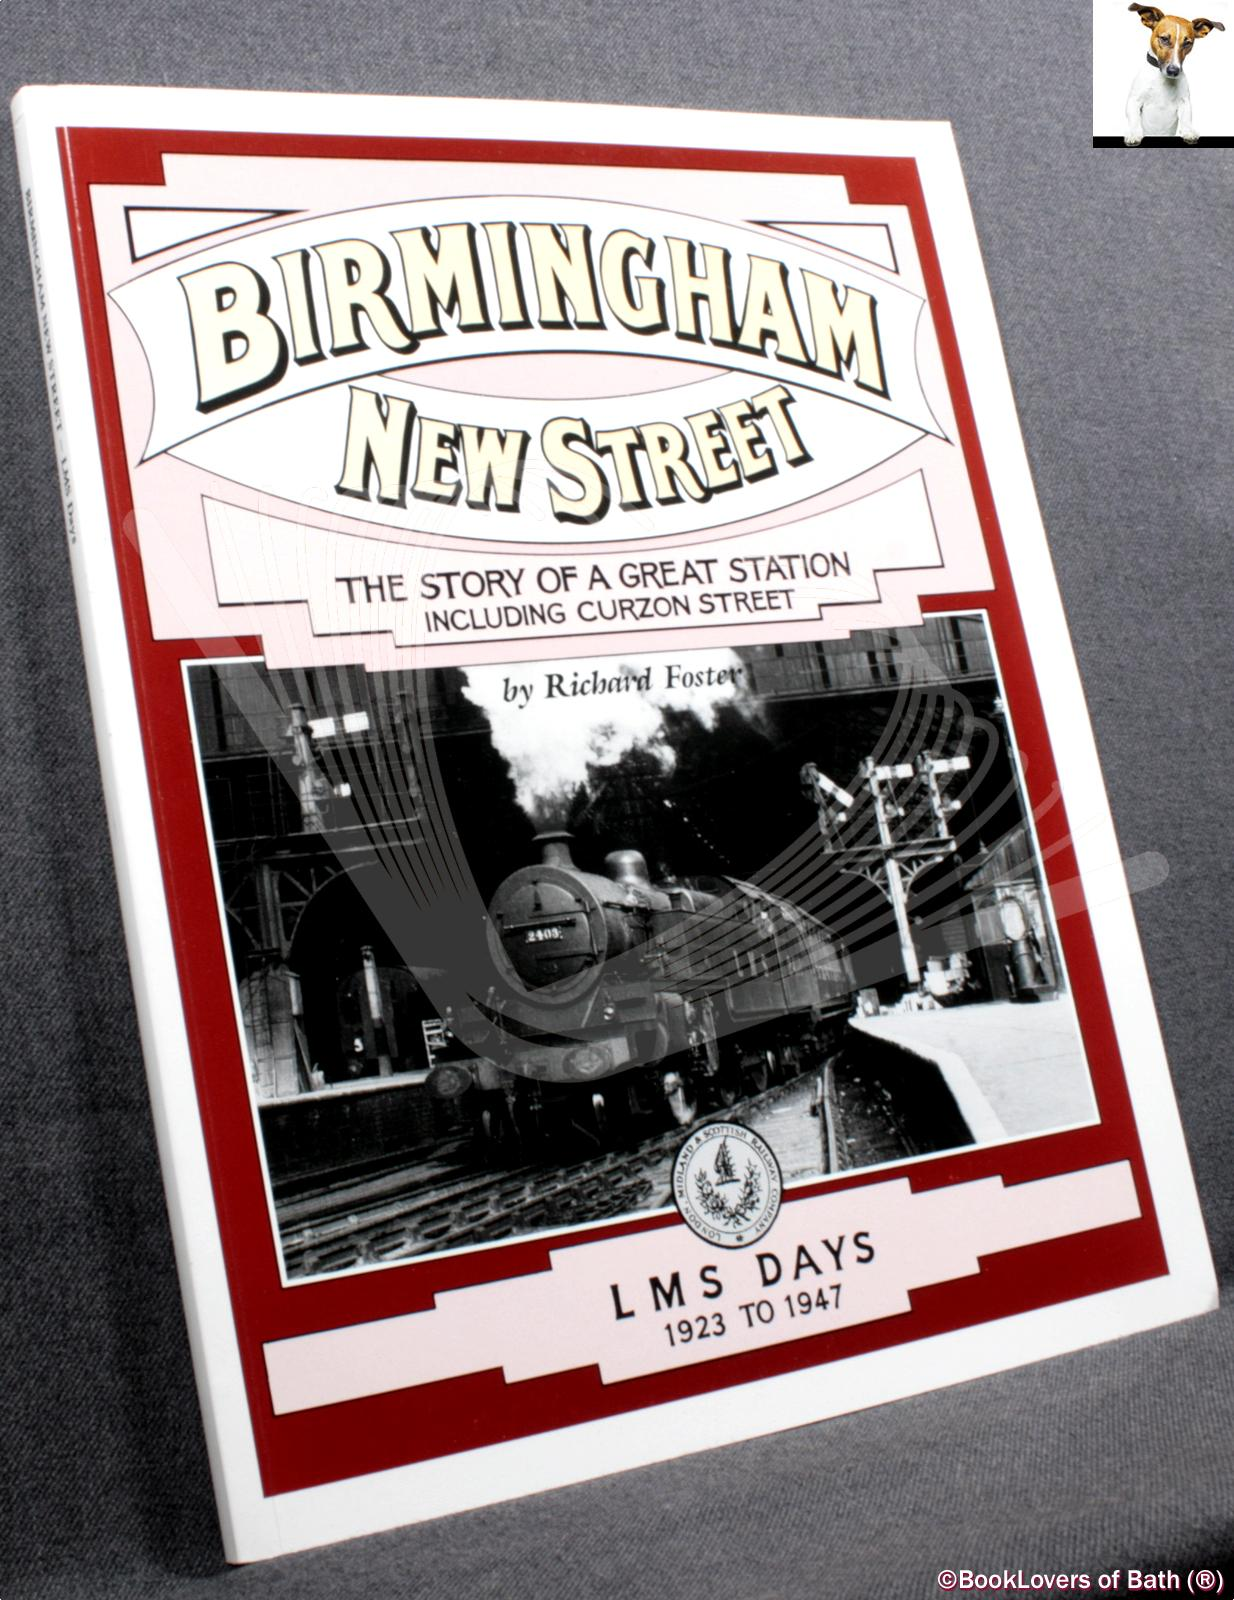 Birmingham New Street the Story of a Great Station Including Curzon Street: Volume 3 LMS Days 1923 to 1947 - Richard Foster